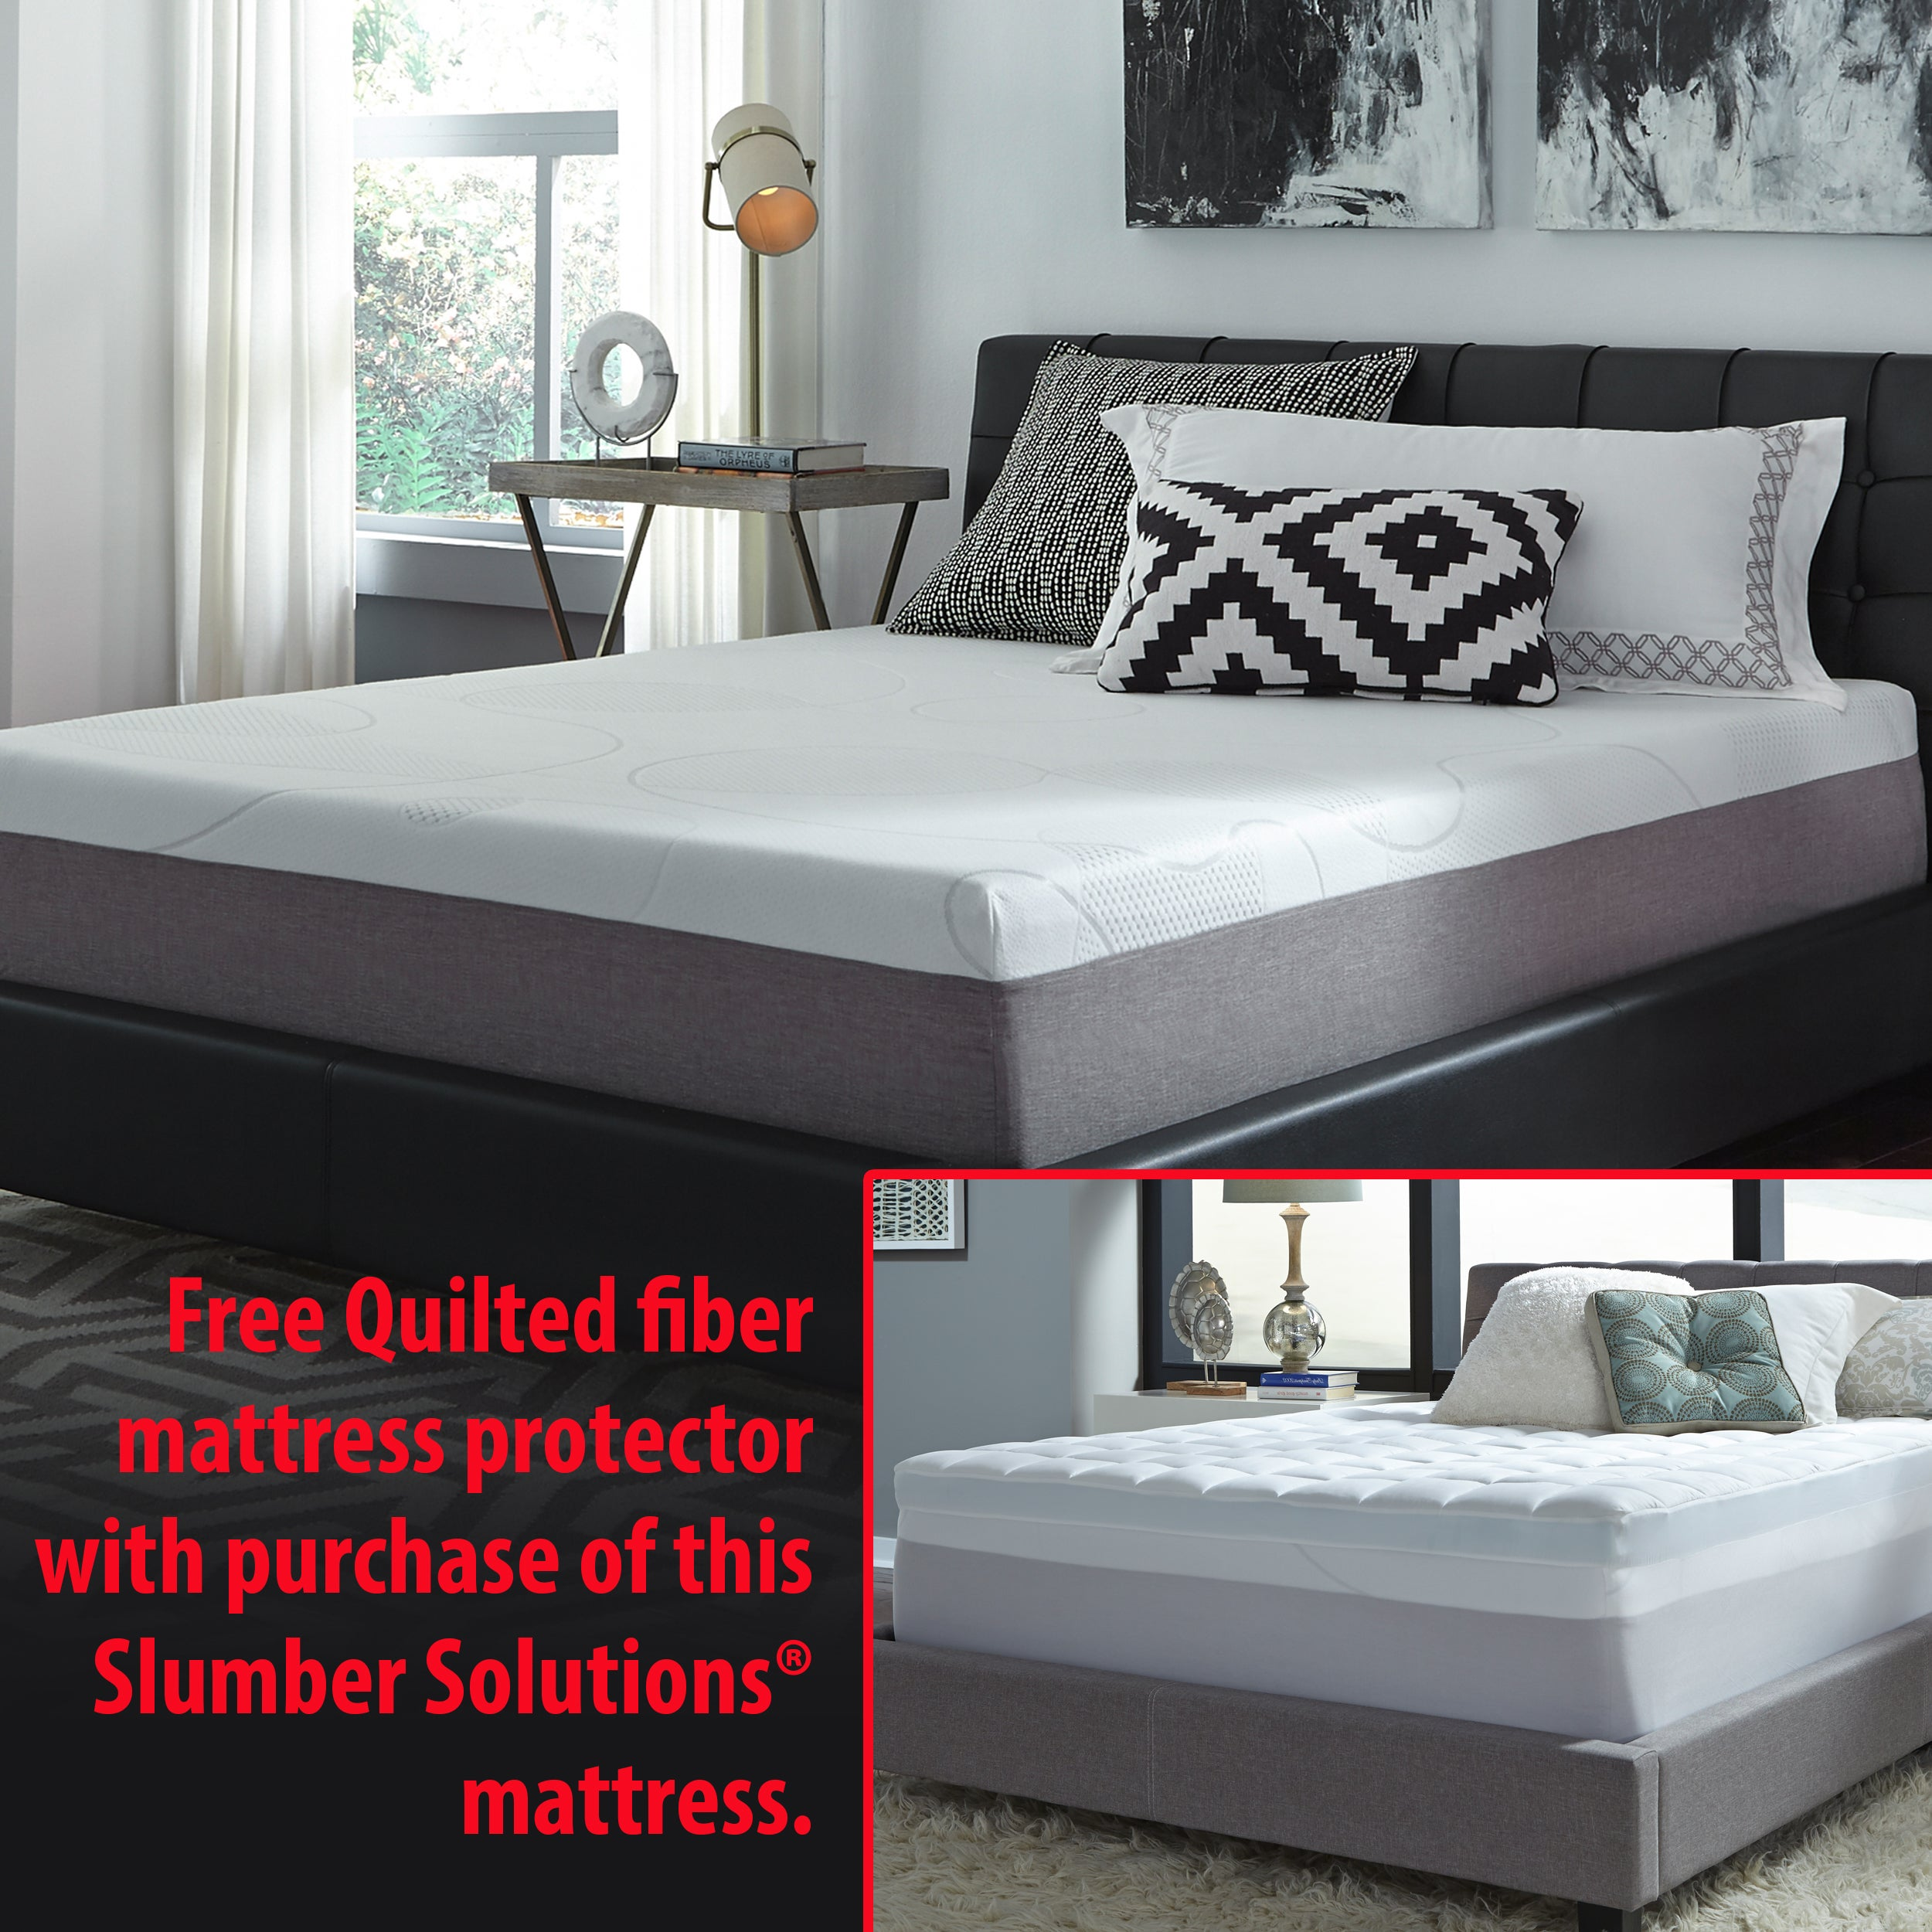 slumber mattress in a box. Slumber Solutions Choose Your Comfort 12-inch Full-size Gel Memory Foam Mattress + Bonus Pad - Free Shipping Today Overstock 15869716 In A Box R